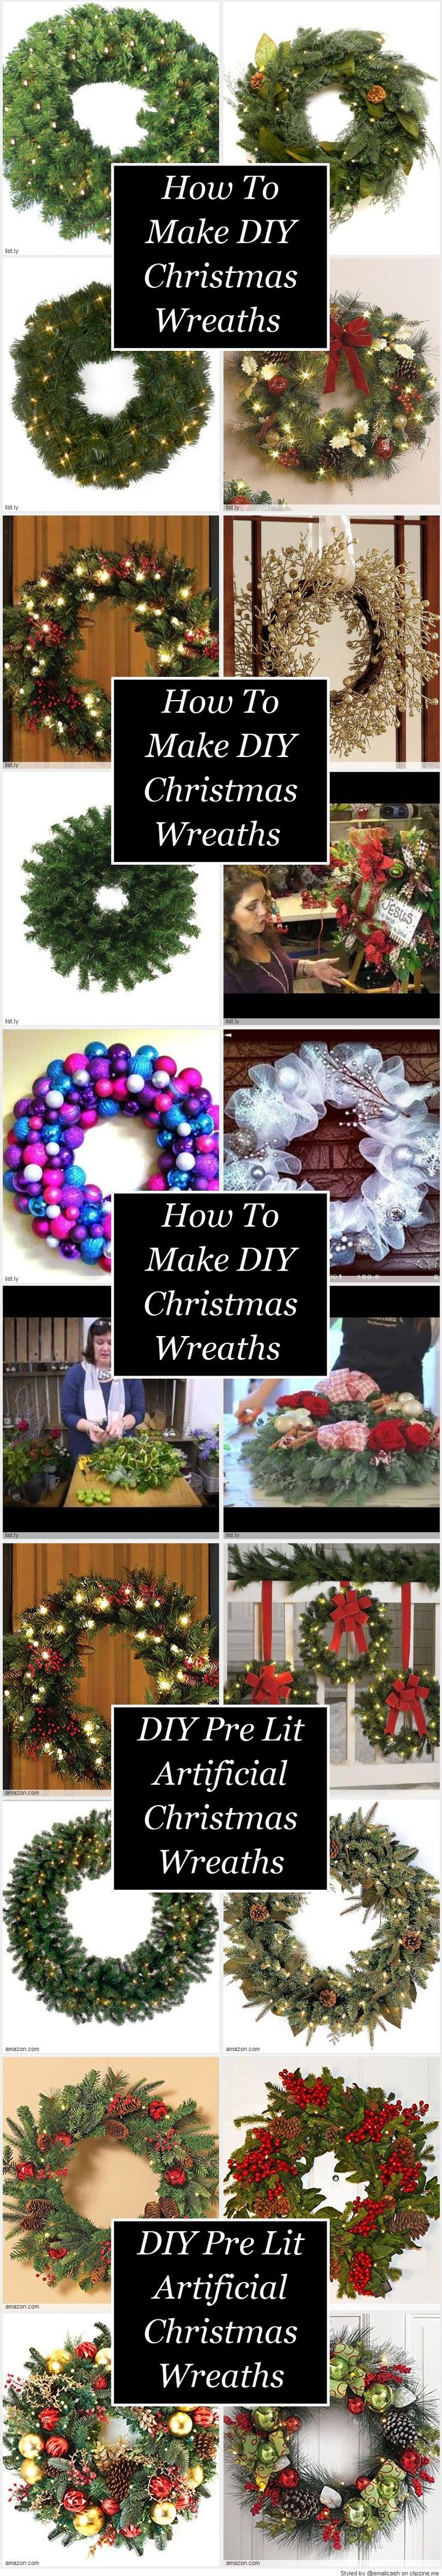 How To Make DIY Christmas Wreaths - Looking for DIY Pre Lit Artificial Christmas Wreaths Ideas? It's usually not that hard but it usually helps if you buy an undecorated Christmas wreath and start from there. Look at some of the wreaths and ideas that we found.